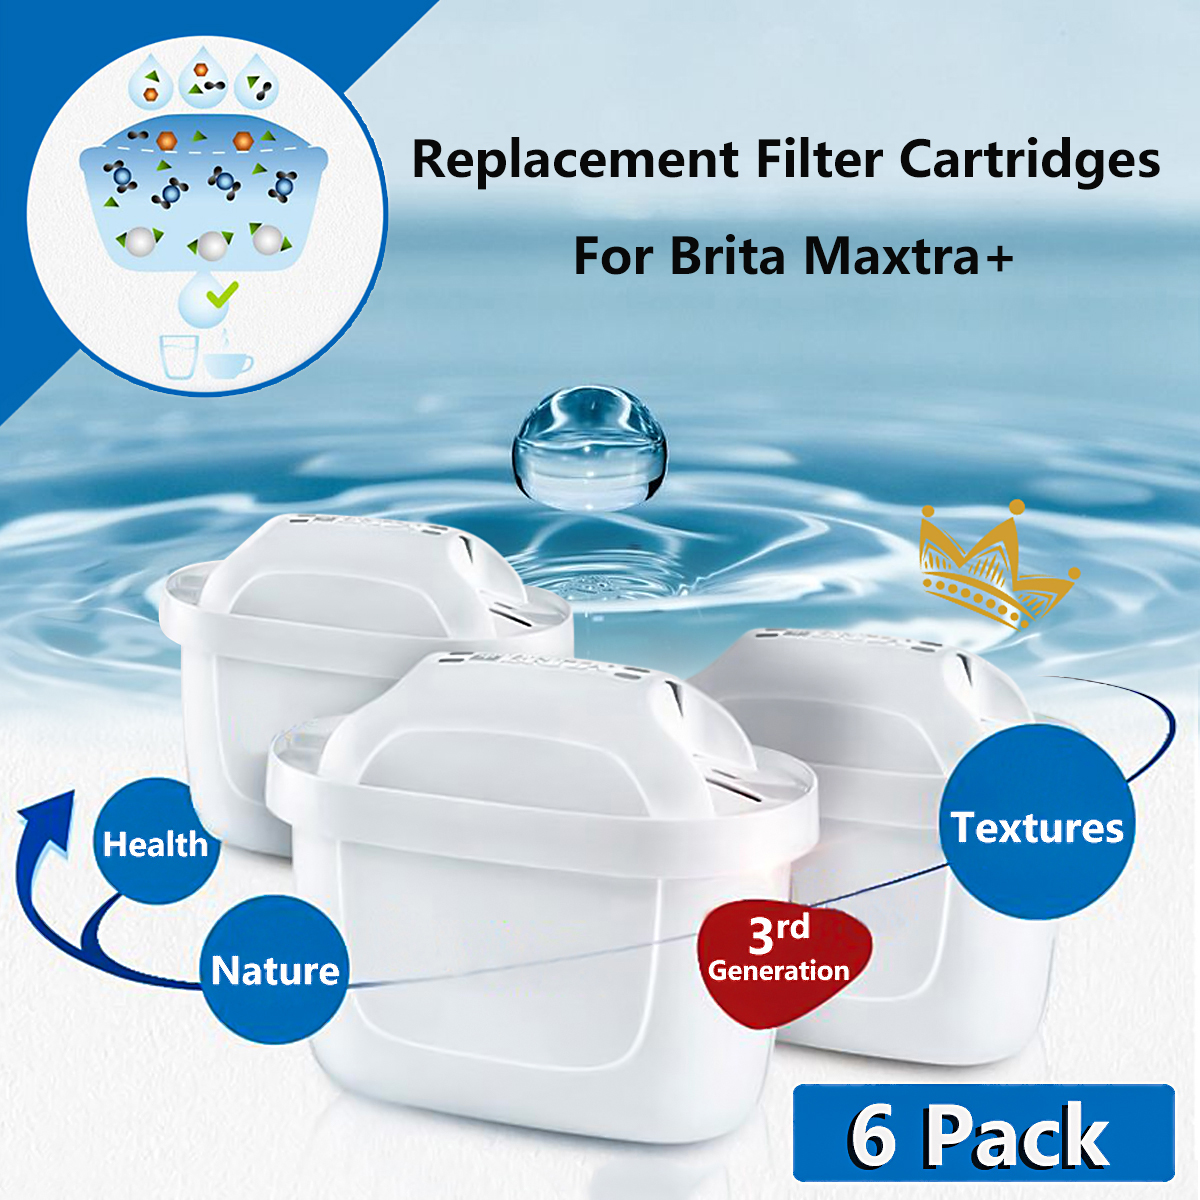 6Pcs Replacement Water Jug Filter Cartridges Refills For Brita Maxtra+ Plus Newly Activated Carbon Handle Design Improves Taste